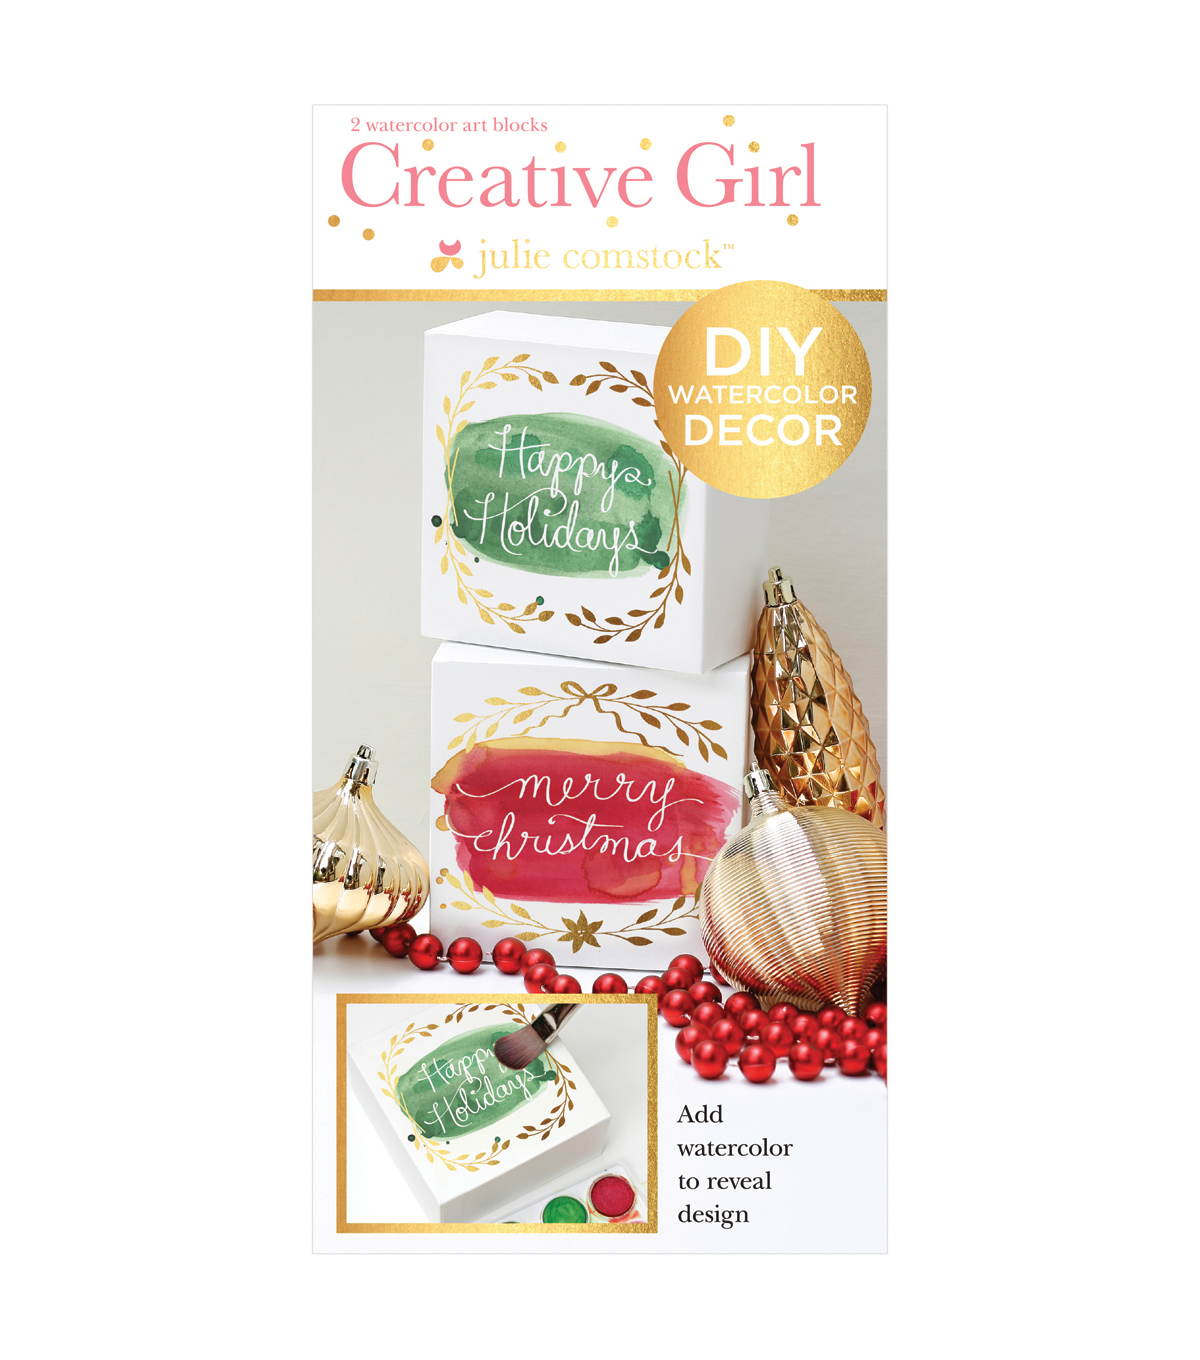 Creative Girl by Julie Comstock™ Watercolor Art Blocks, Merry & Happy